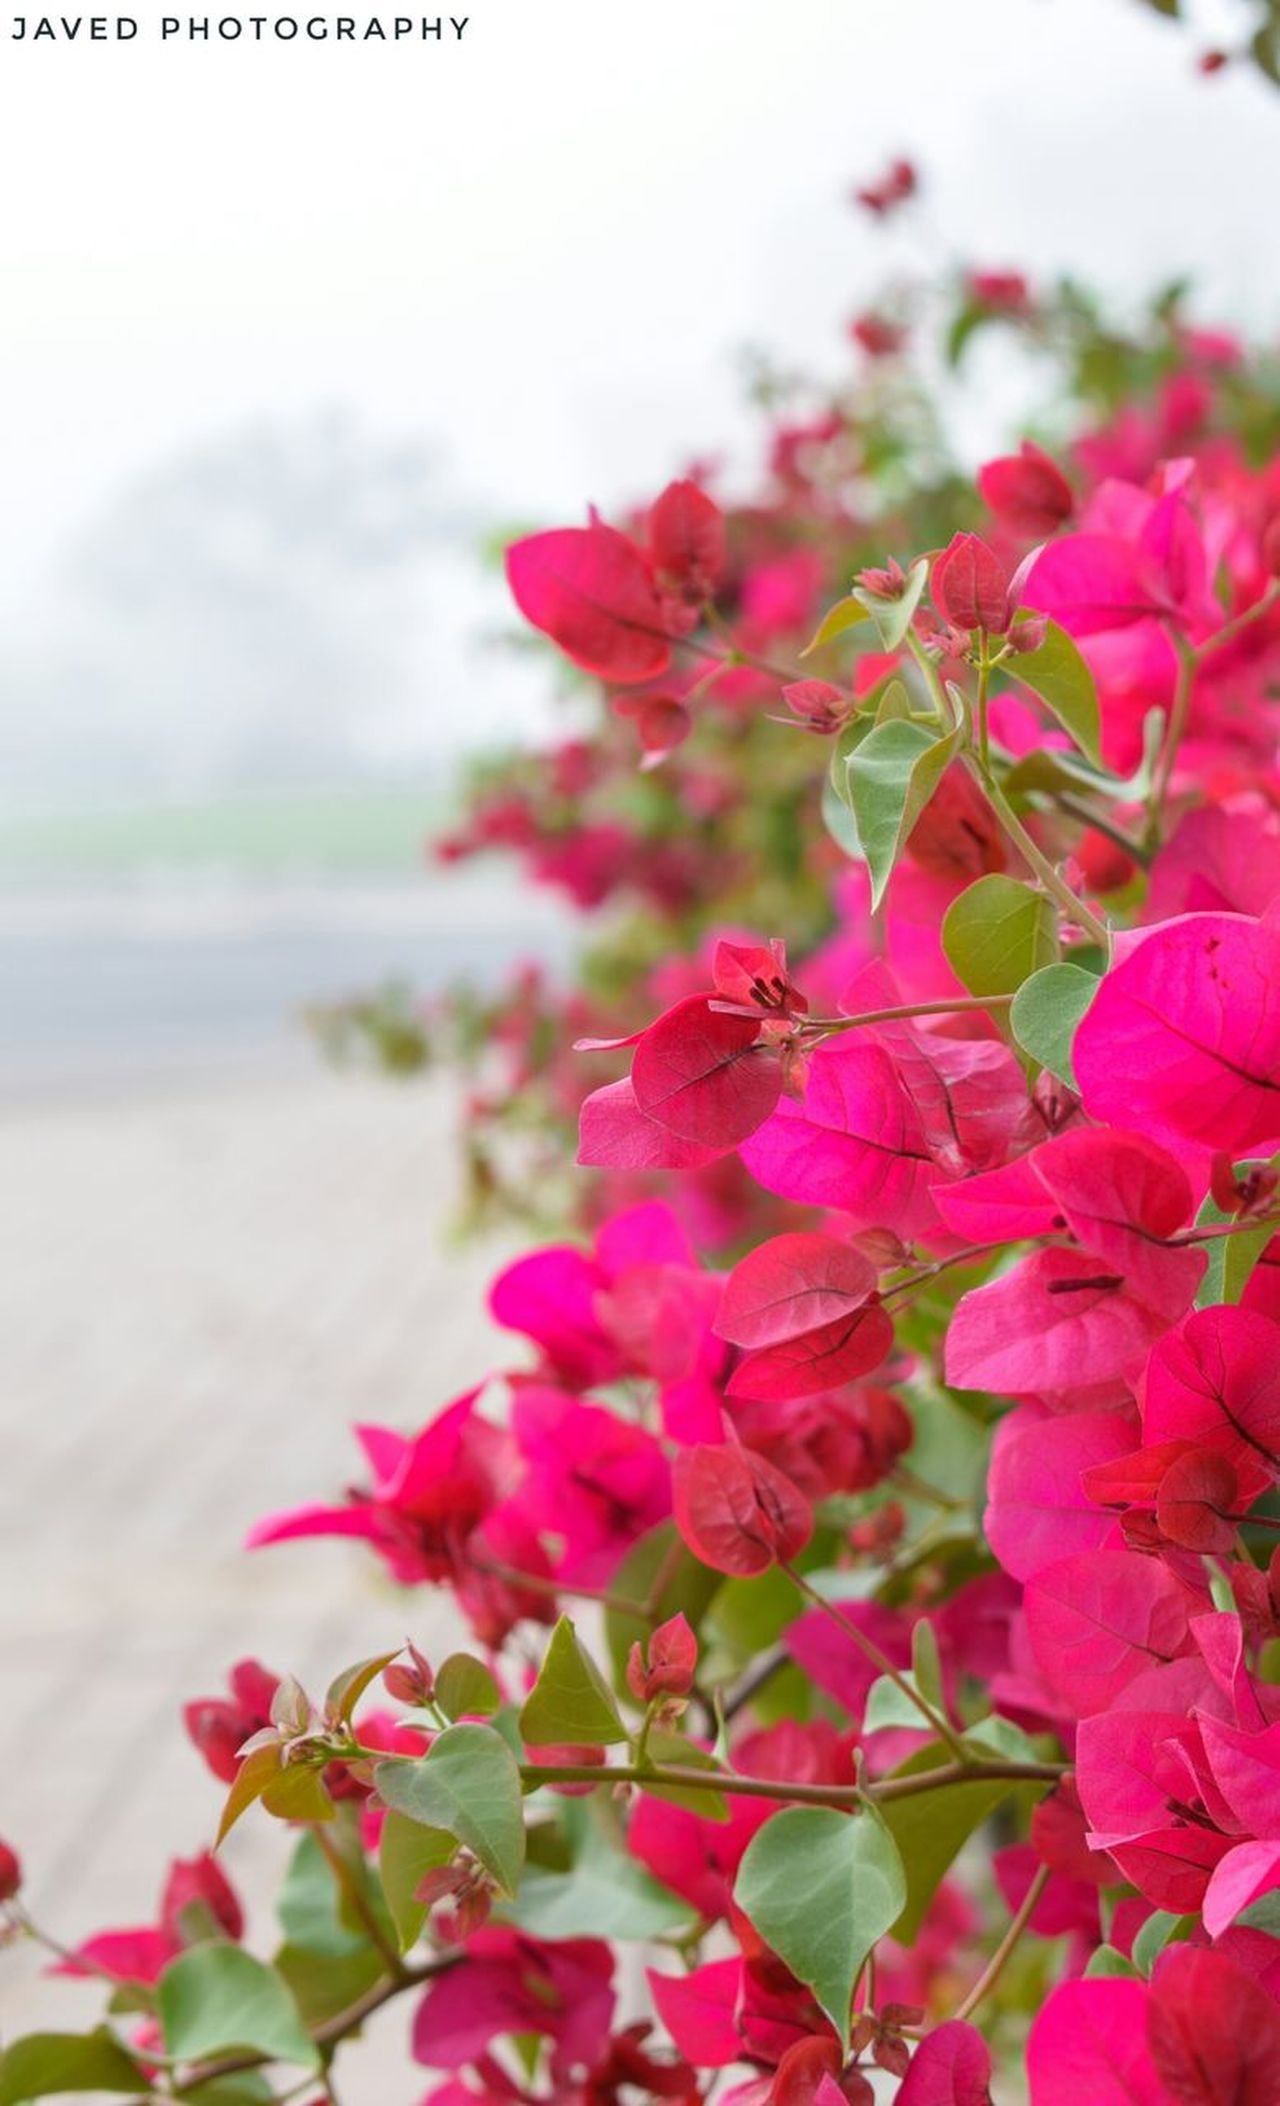 Beauty of Bougainvillea! Flower Nature Pink Color Beauty In Nature Plant Close-up Freshness Focus On Foreground Outdoors Fragility Flower Head Bougainvillea No People Day Garden Bees Flower Collection Beauty EyeEm Best Shots Eyem Gallery EyeEm Nature Lover